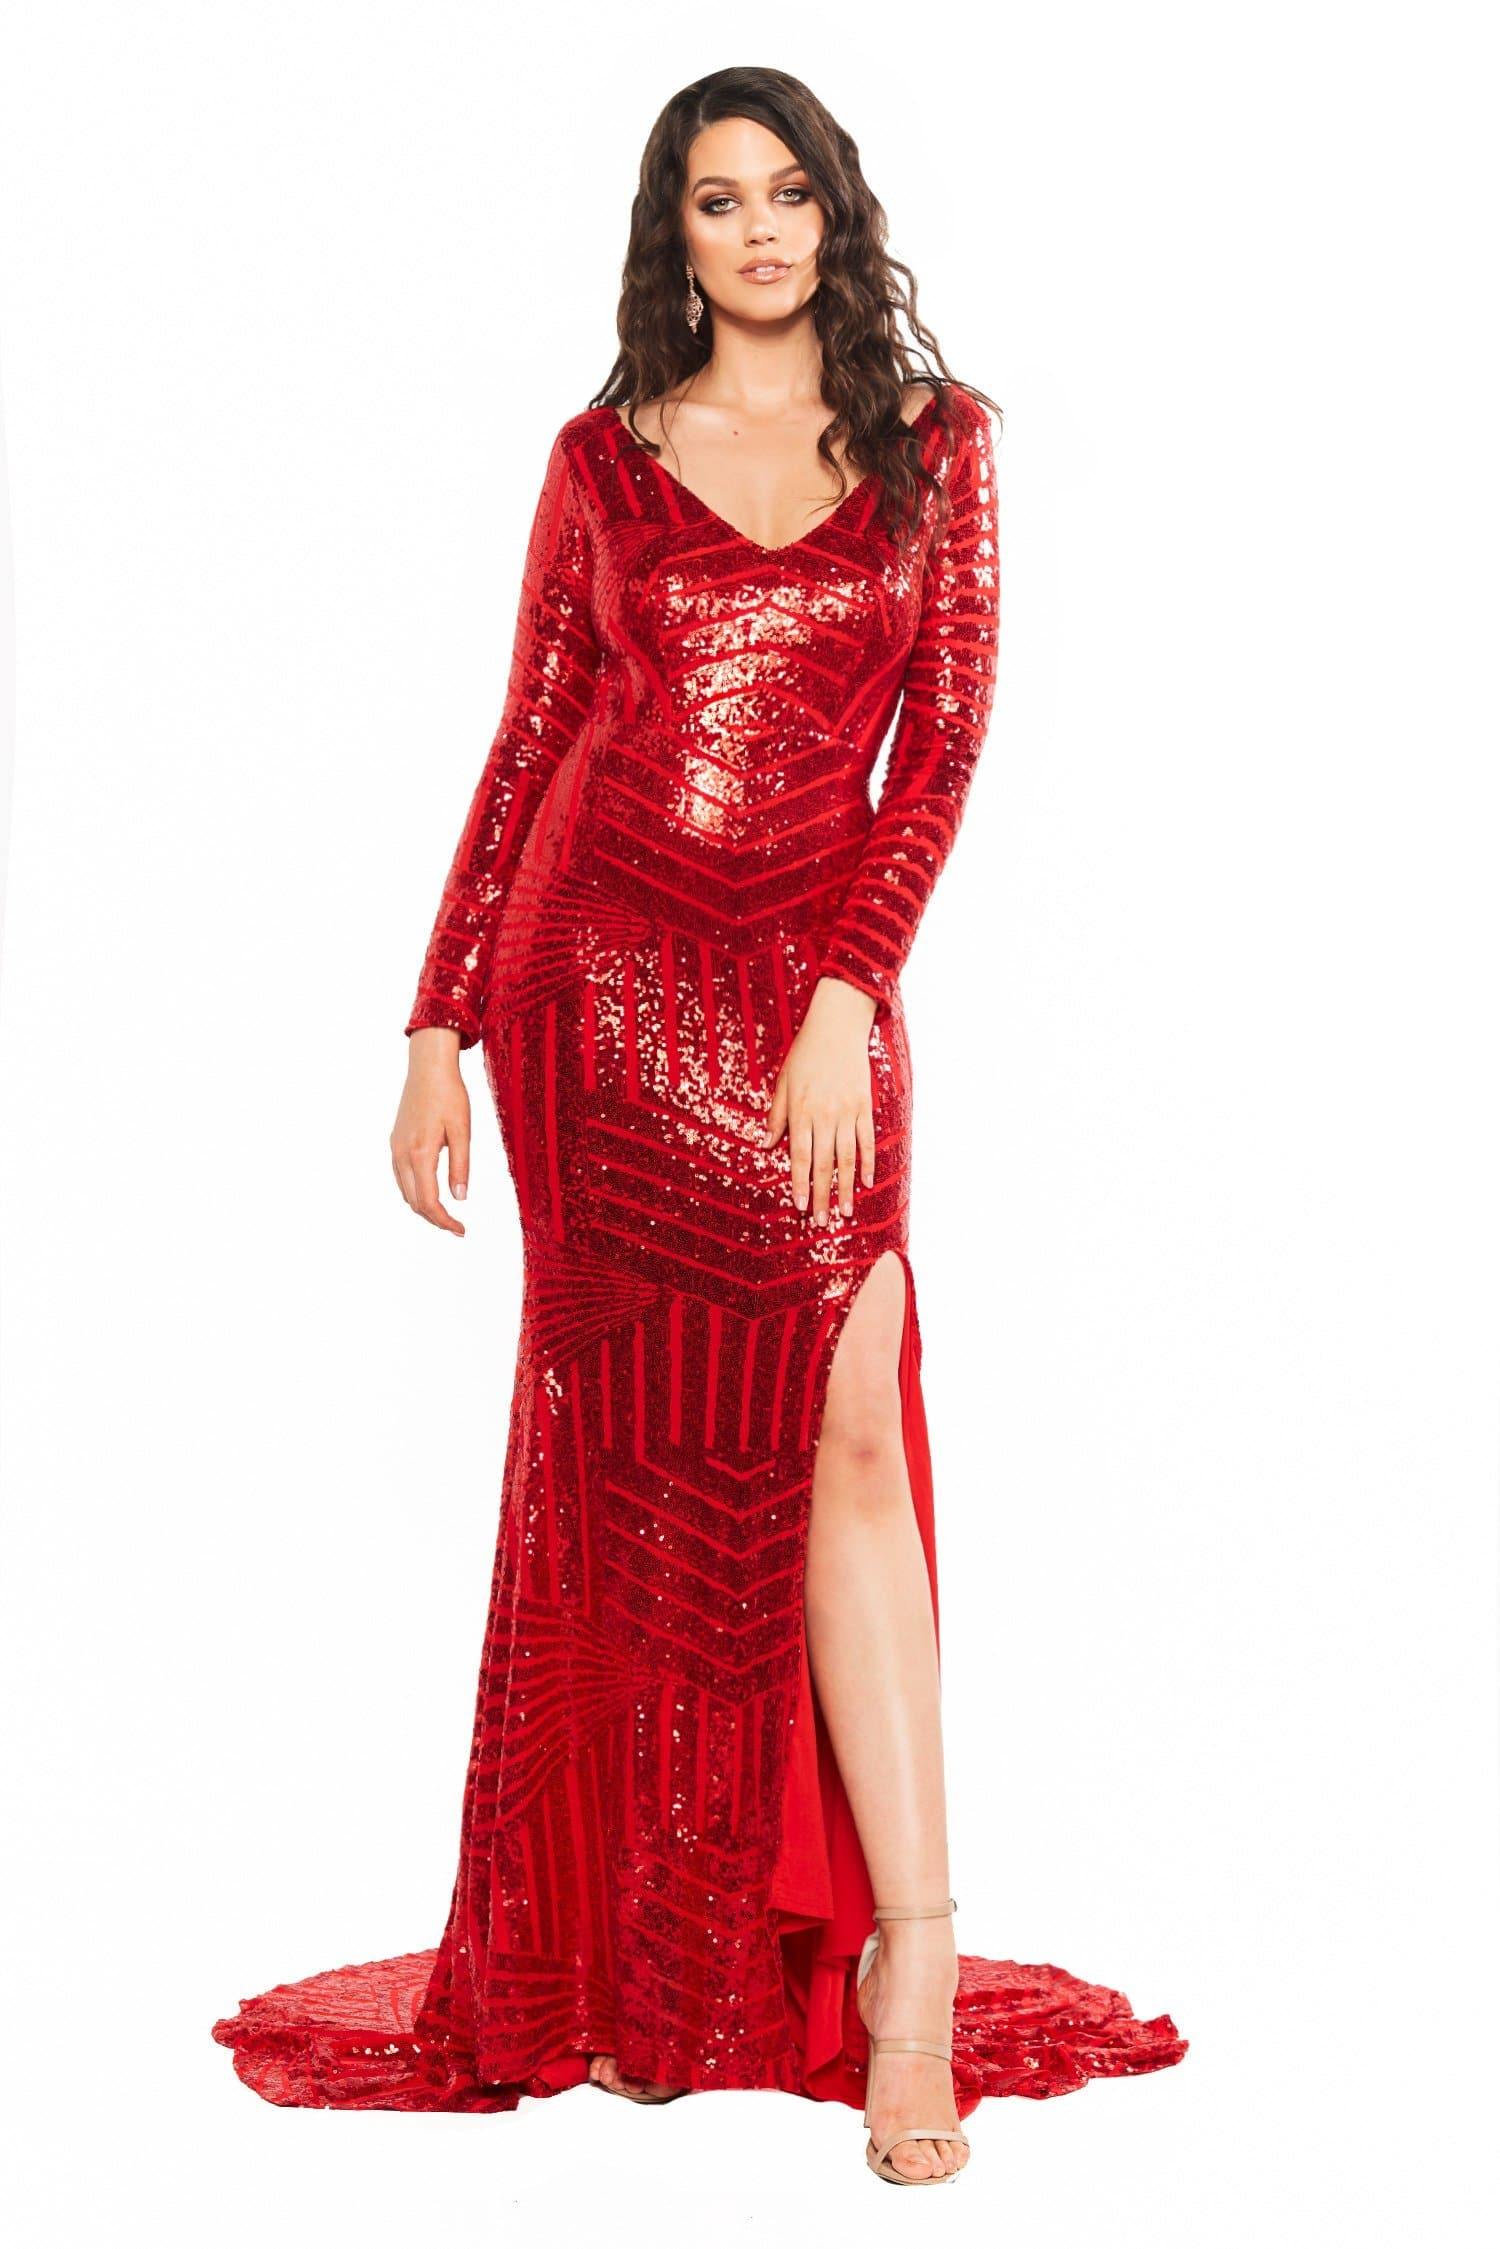 441e1c5bbb0 A N Curve Kaya - Red Sequin Dress with Long Sleeves   Side Slit ...